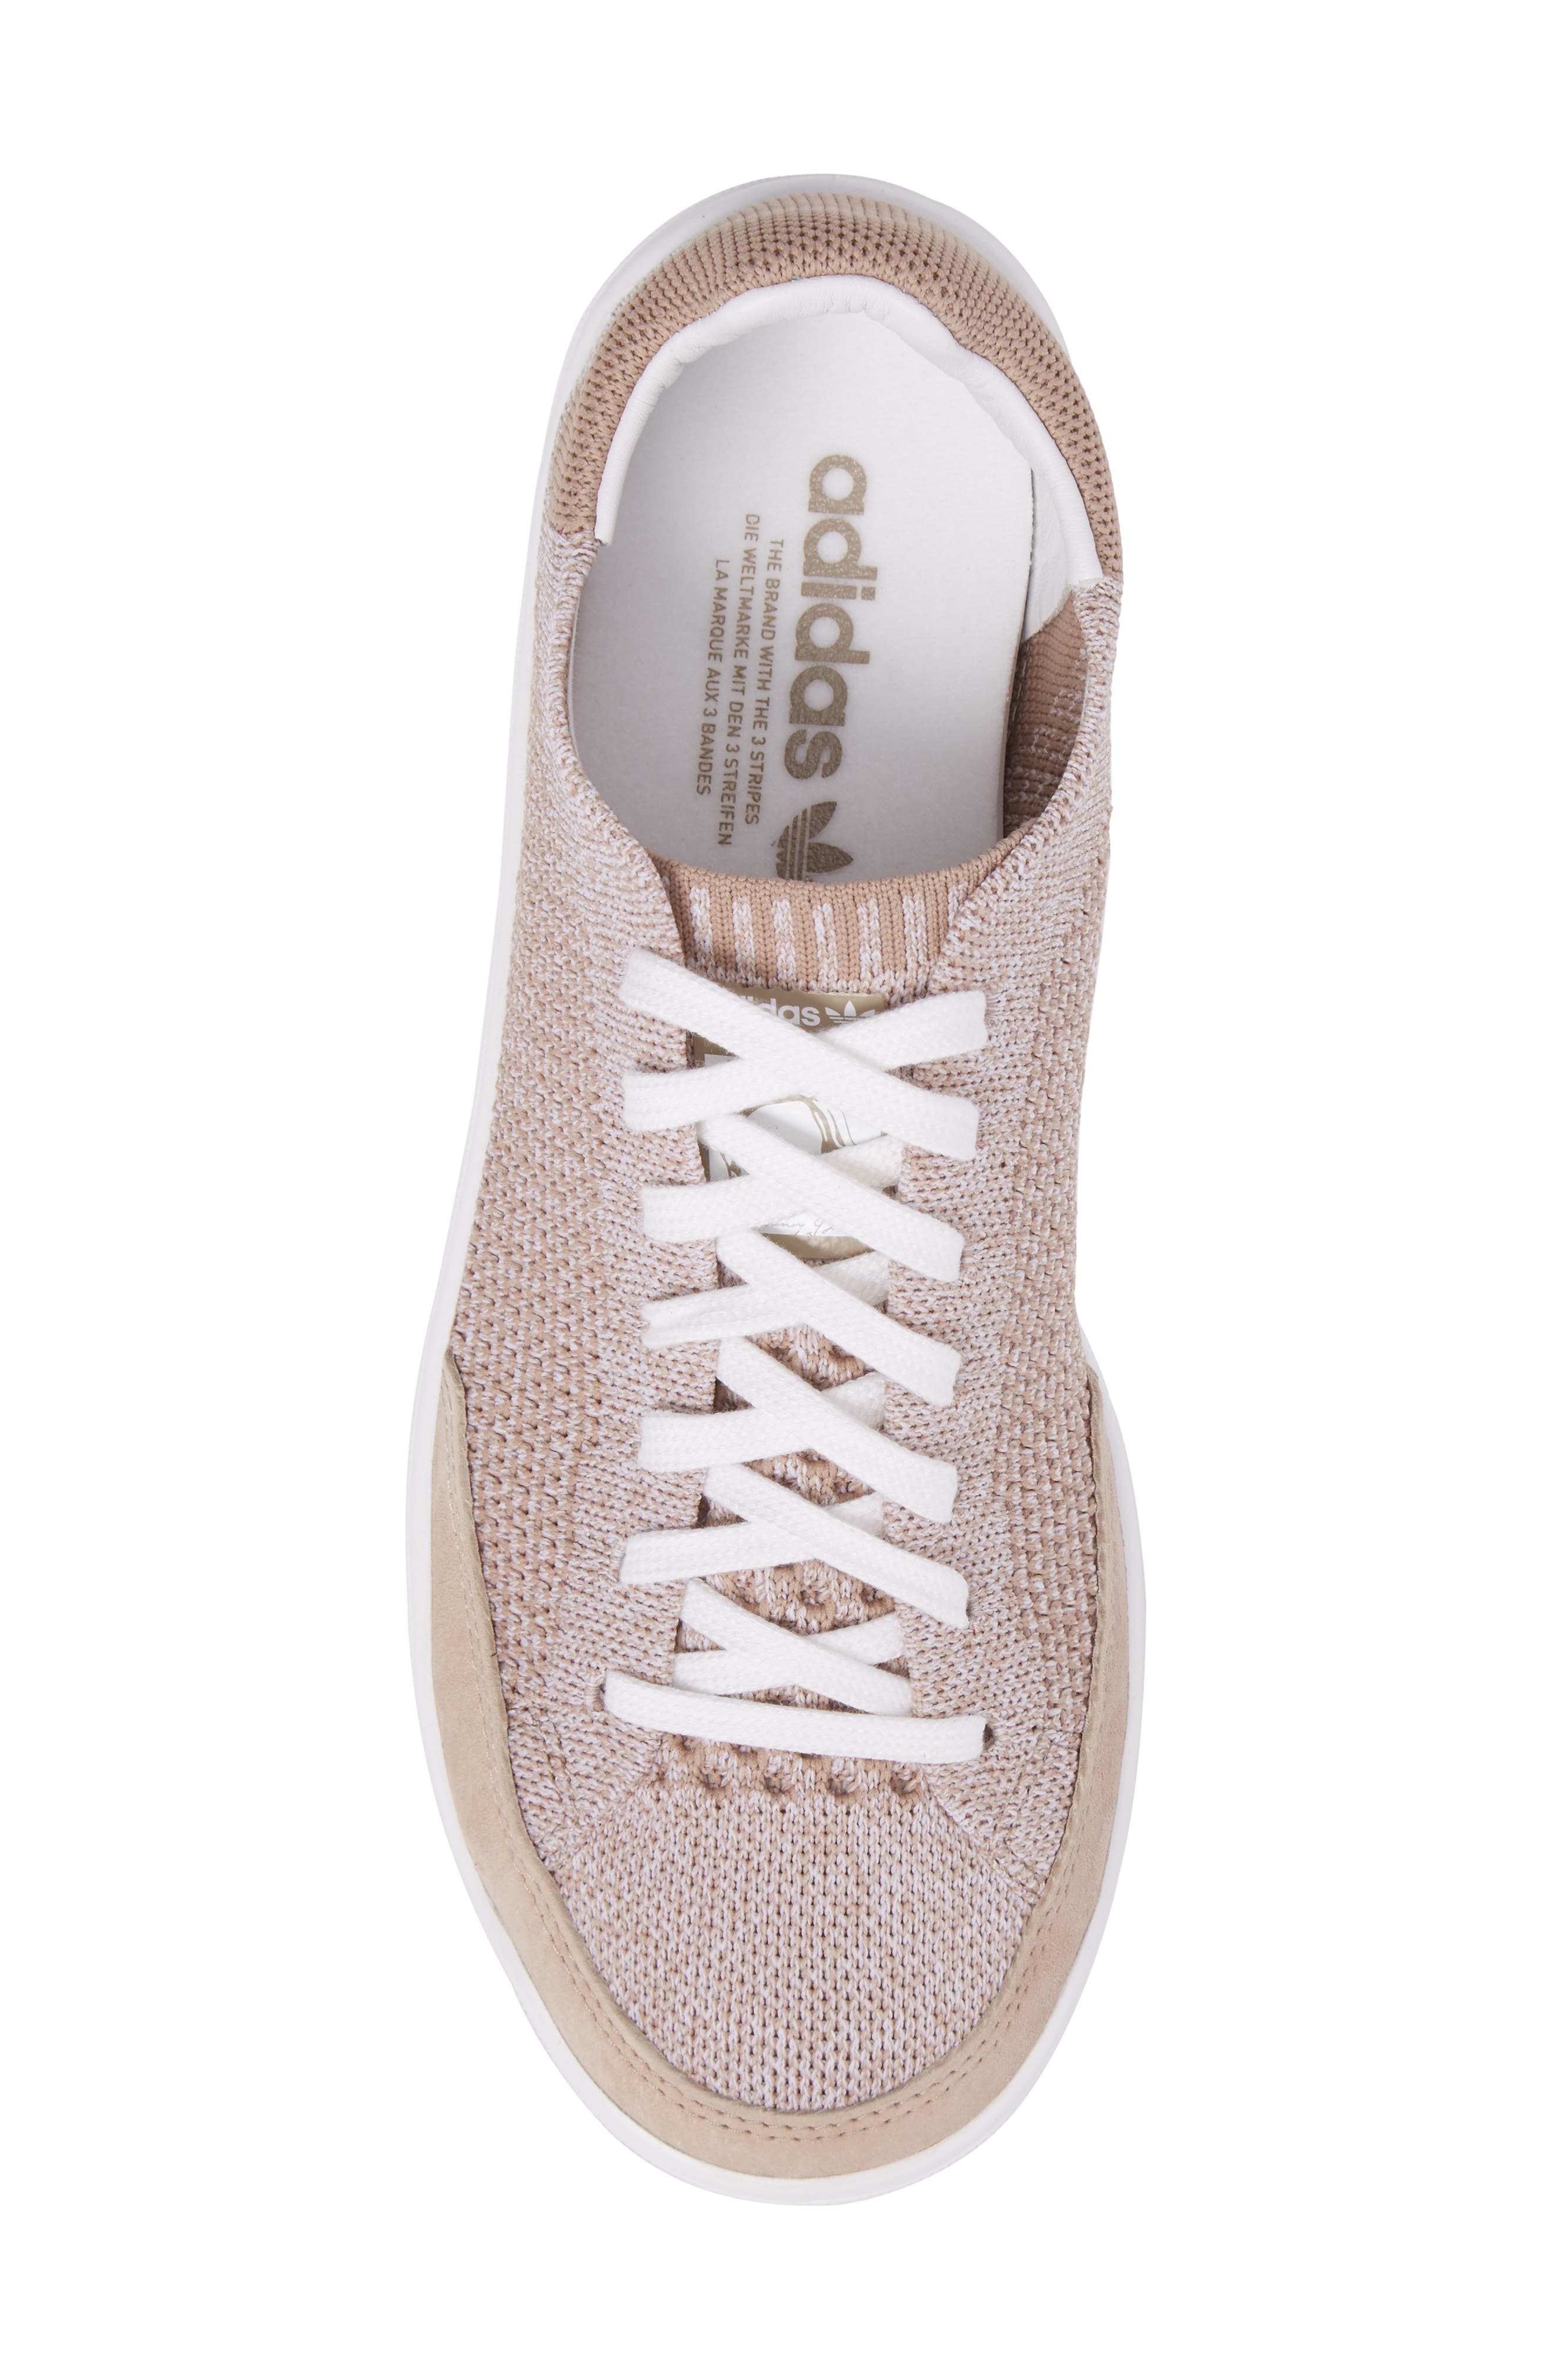 Rod Laver Super Primeknit Sneaker,                             Alternate thumbnail 5, color,                             Khaki/ White/ Crystal White